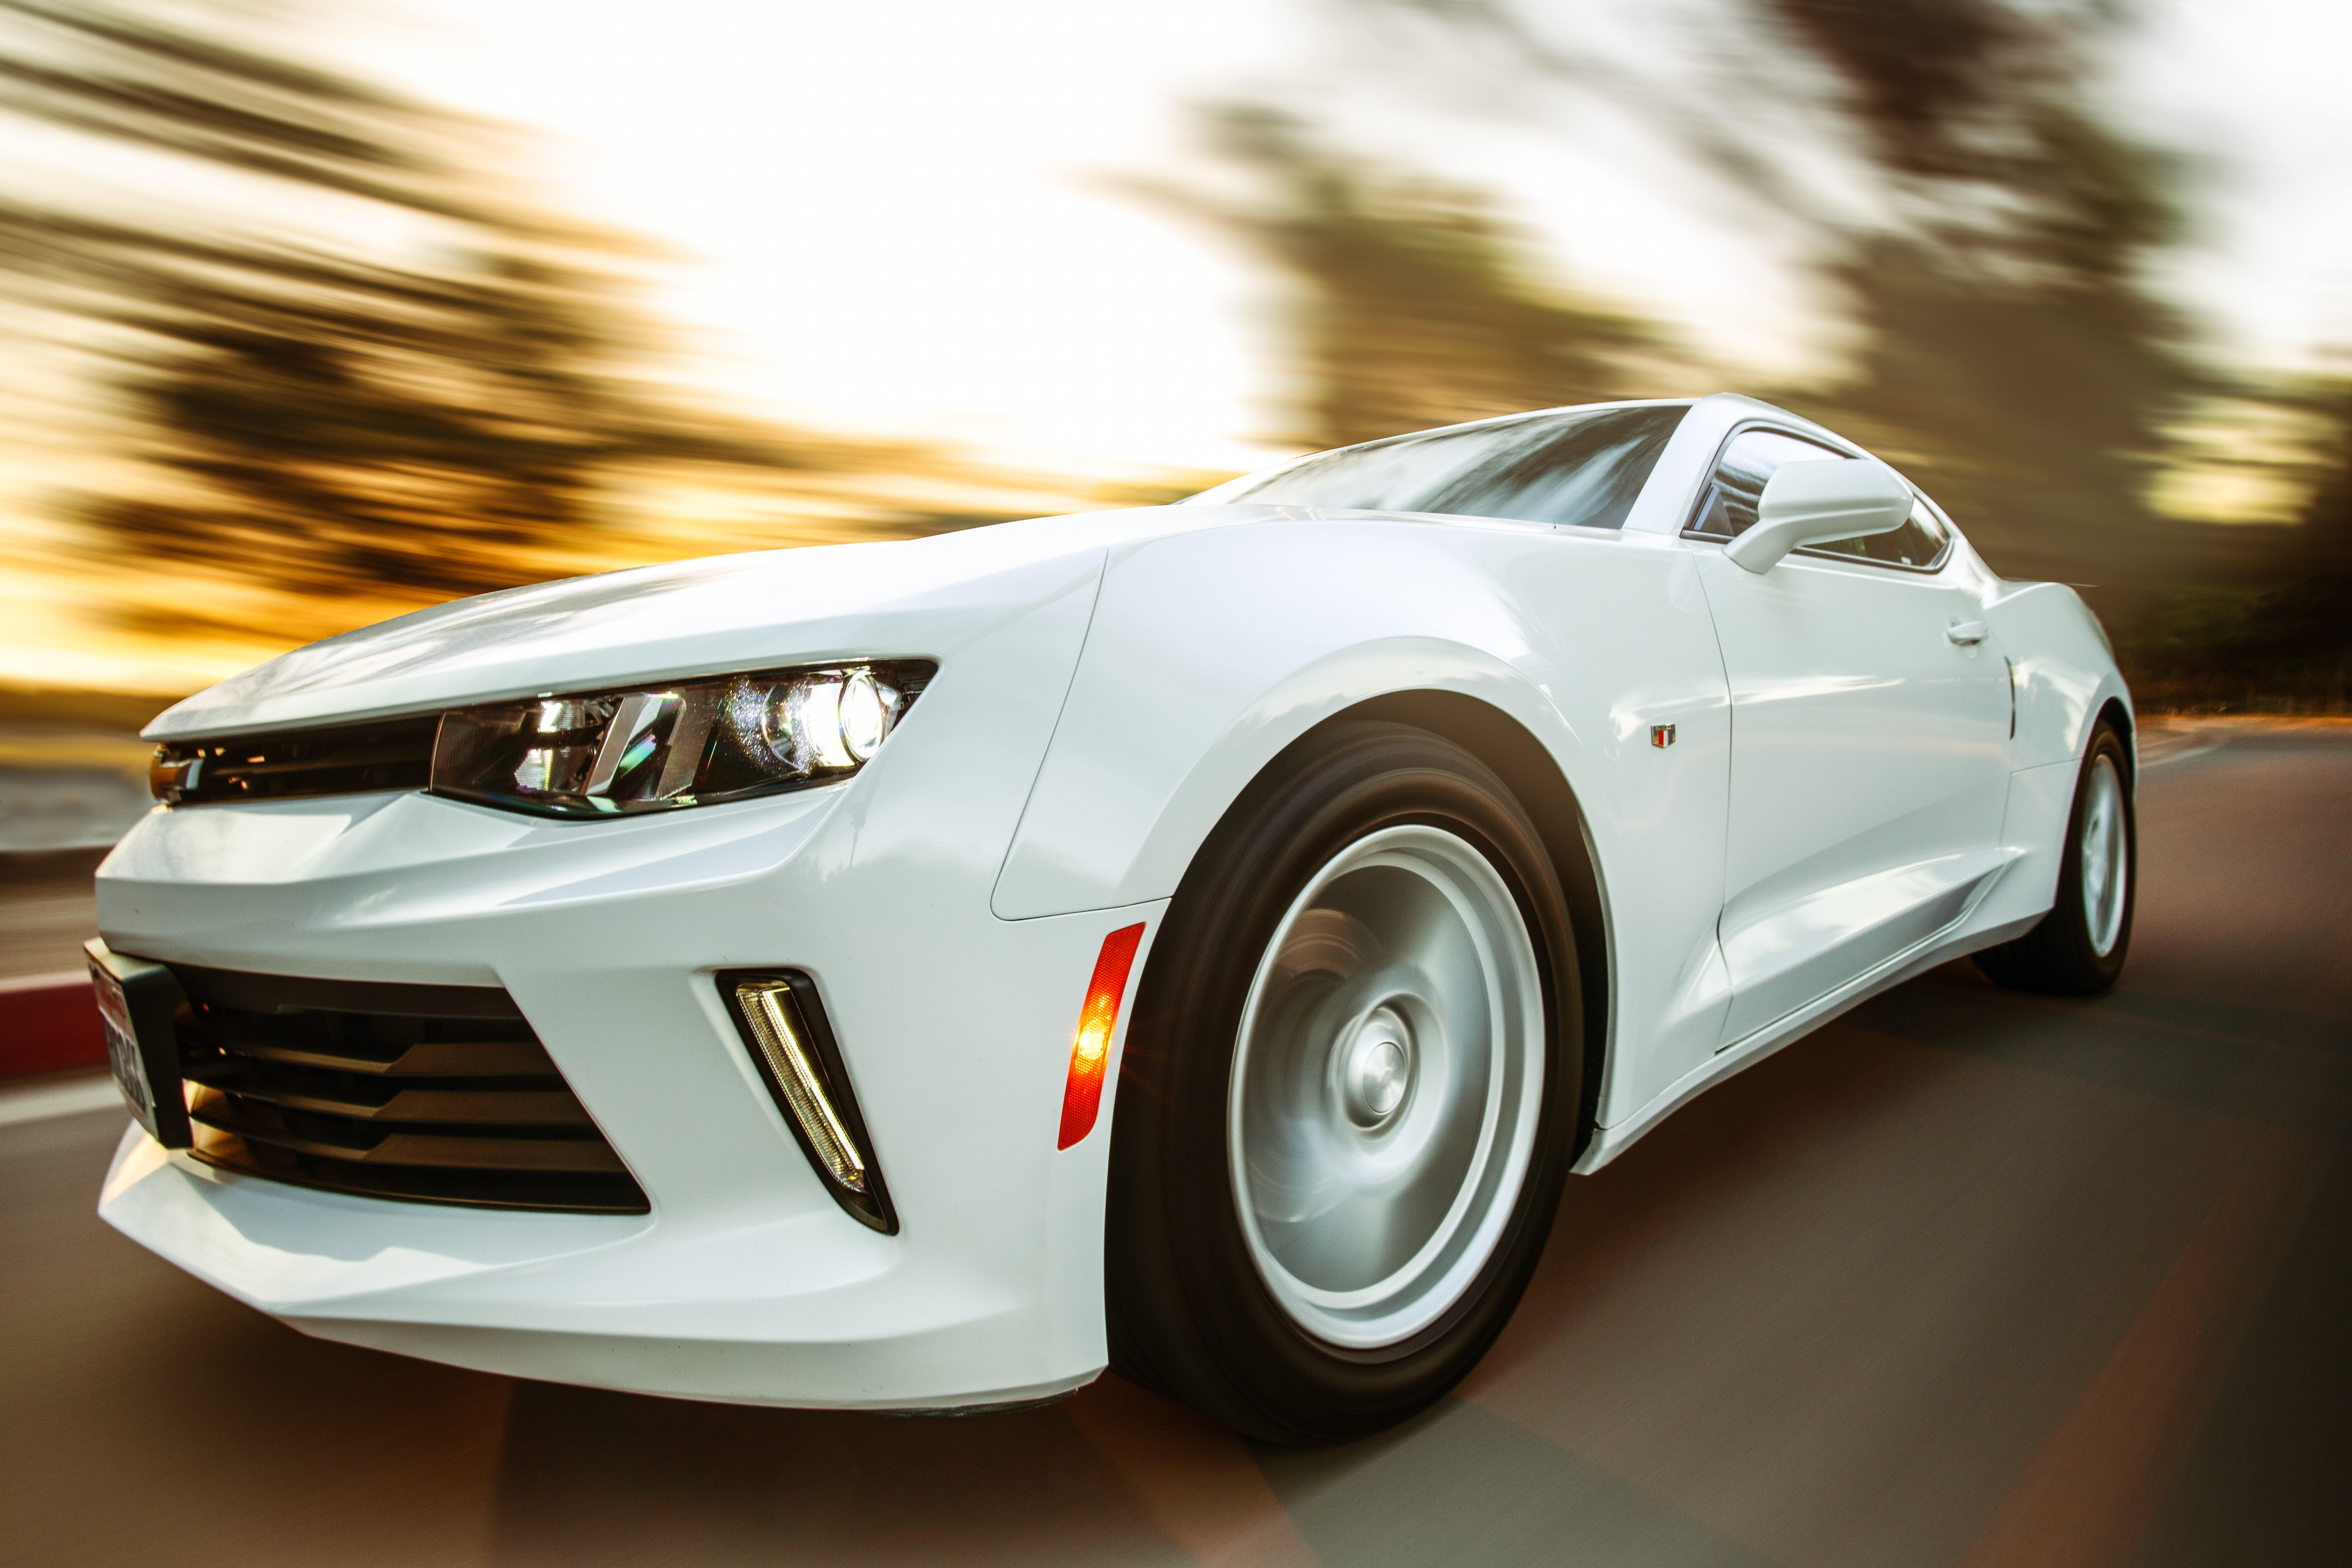 Factors That Impact Car Insurance Costs in Mexico